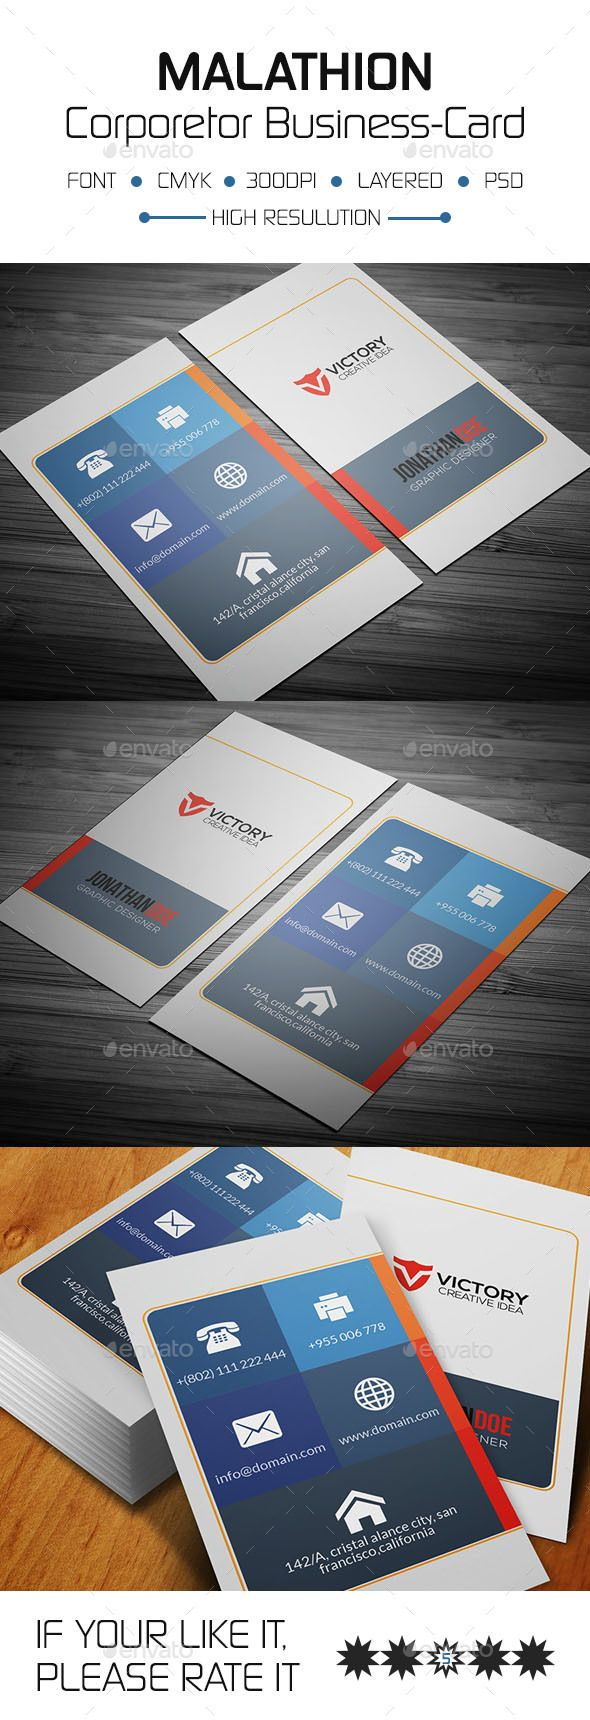 Malathion Corporate Business Card Template PSD. Download here: https://graphicriver.net/item/malathion-corporate-business-card/17460740?ref=ksioks